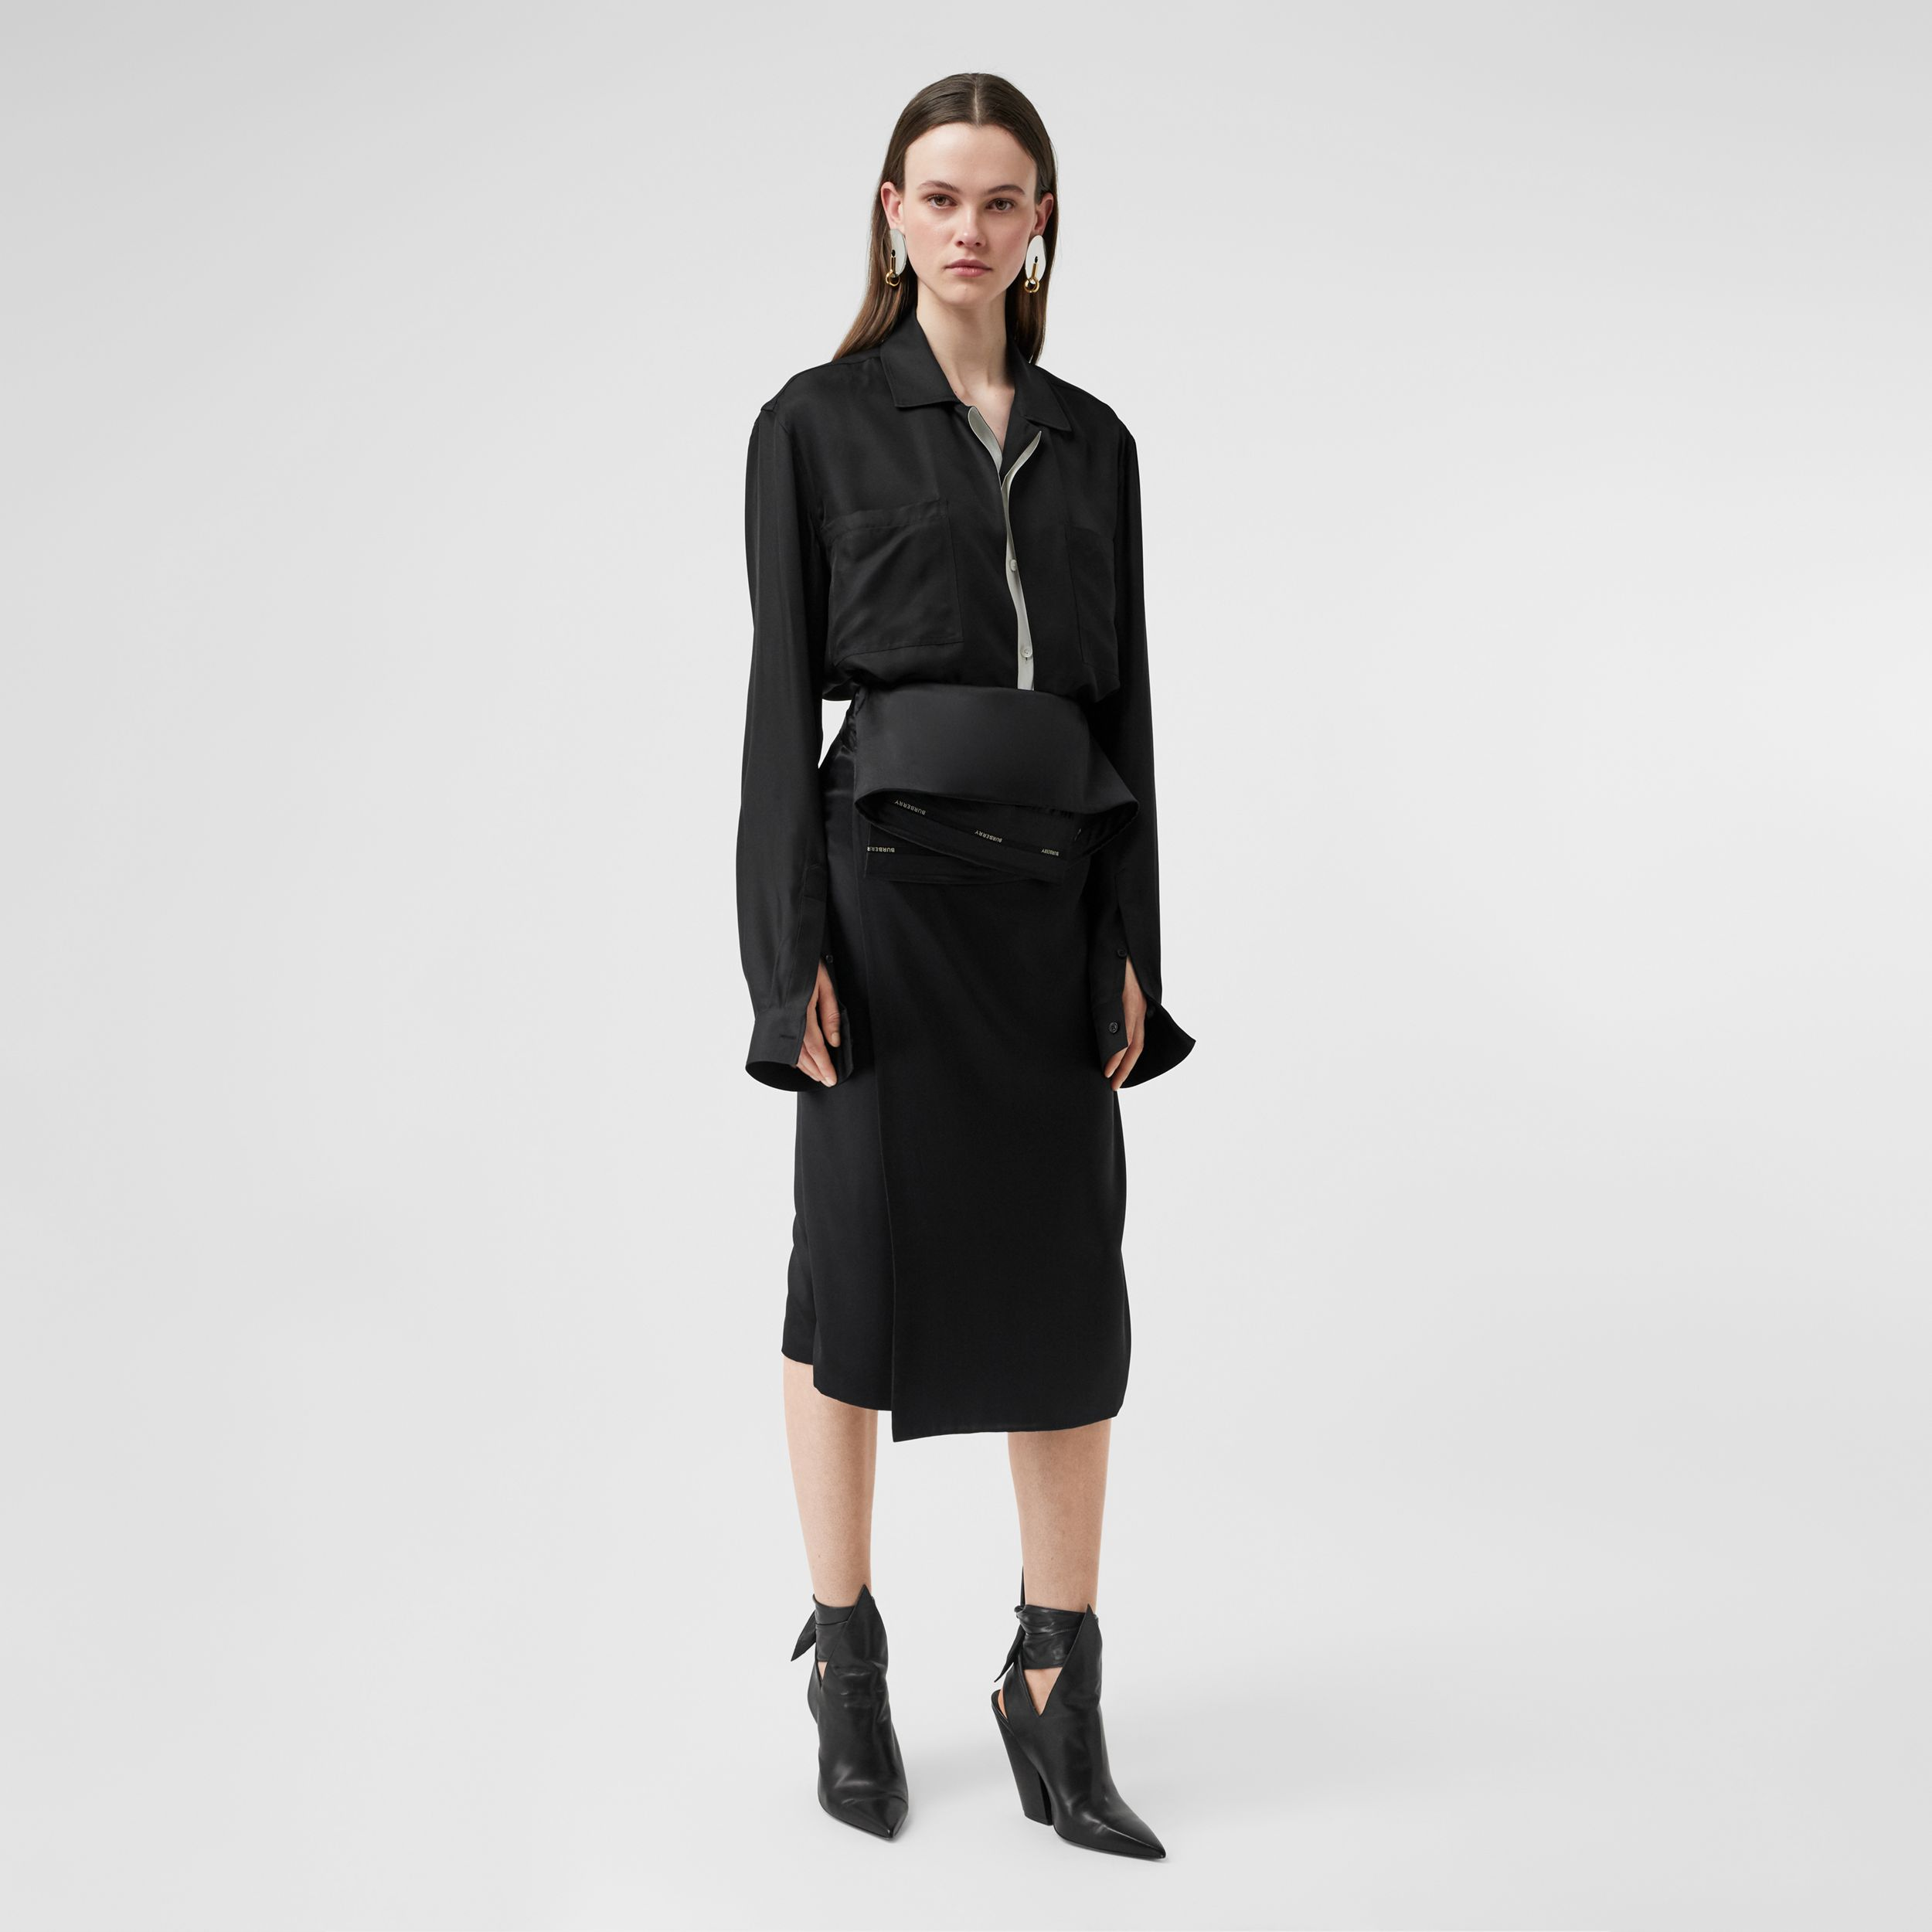 Silk Satin Foldover Skirt in Black - Women | Burberry Canada - 1